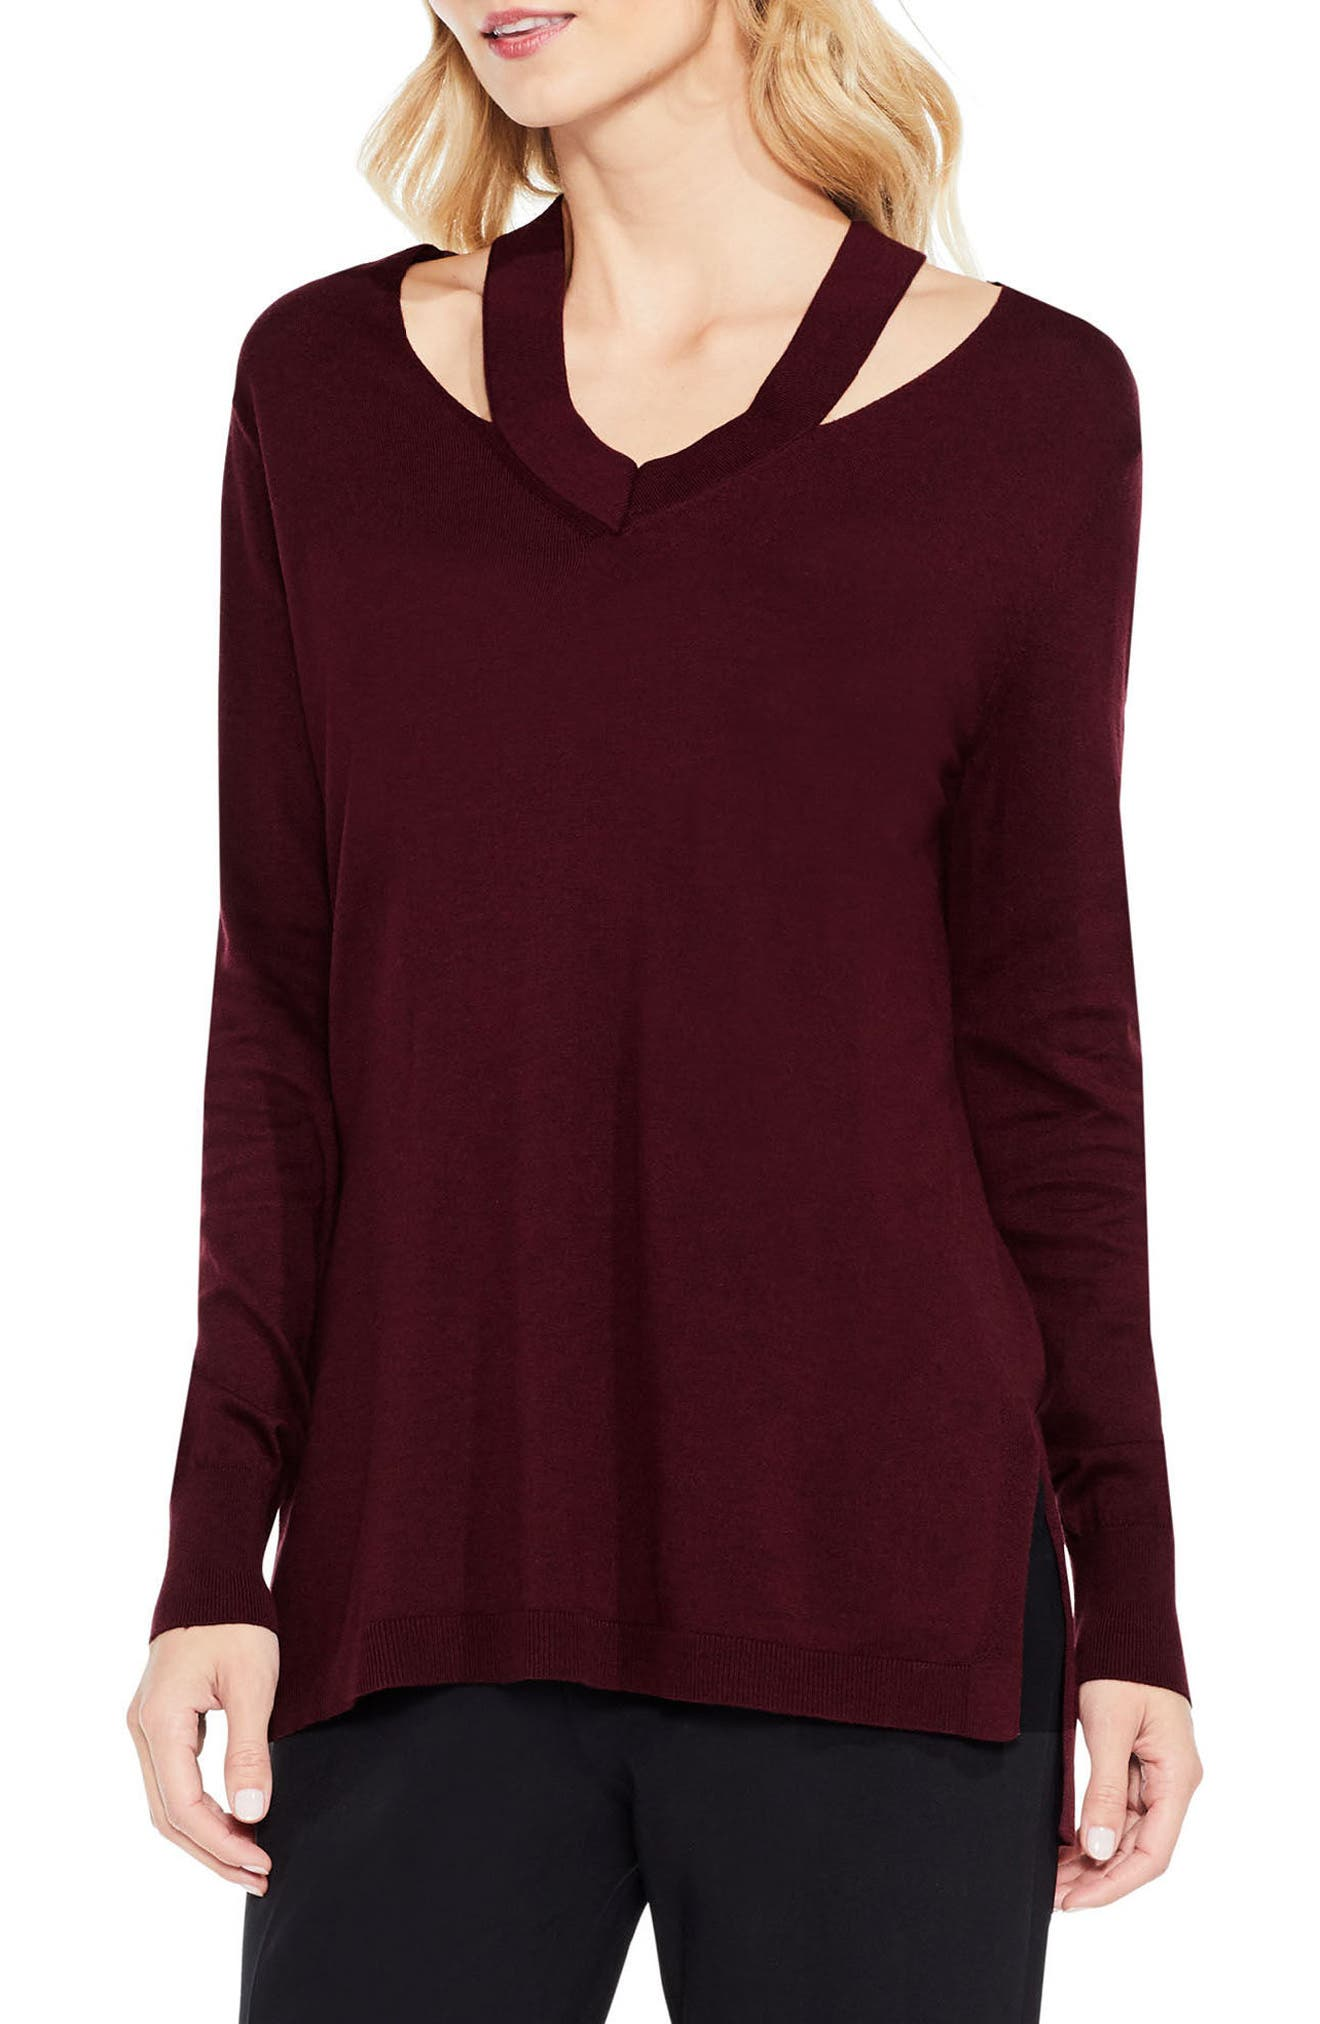 Main Image - Vince Camuto Cutout Neck Sweater